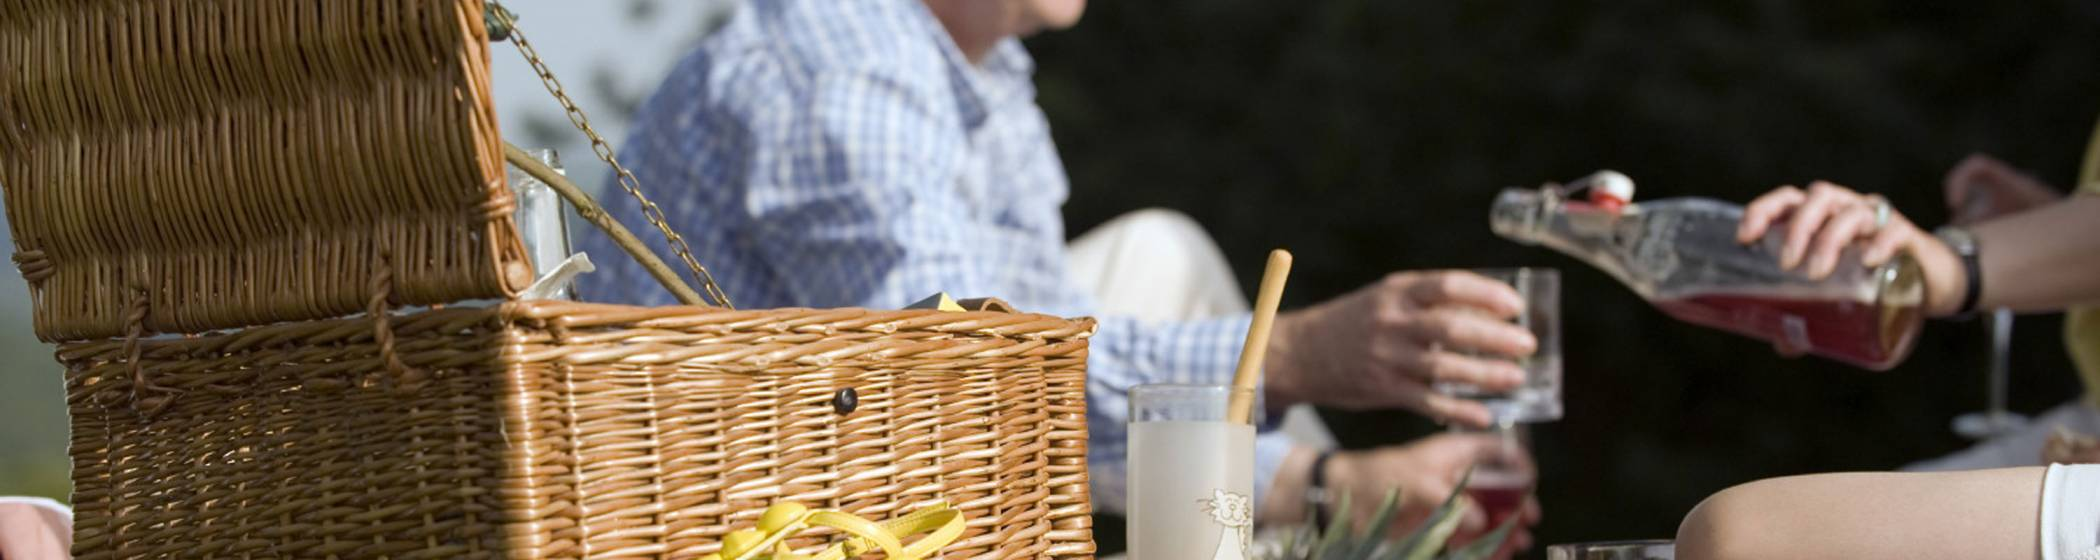 Visitors enjoying a picnic from a wicker hamper